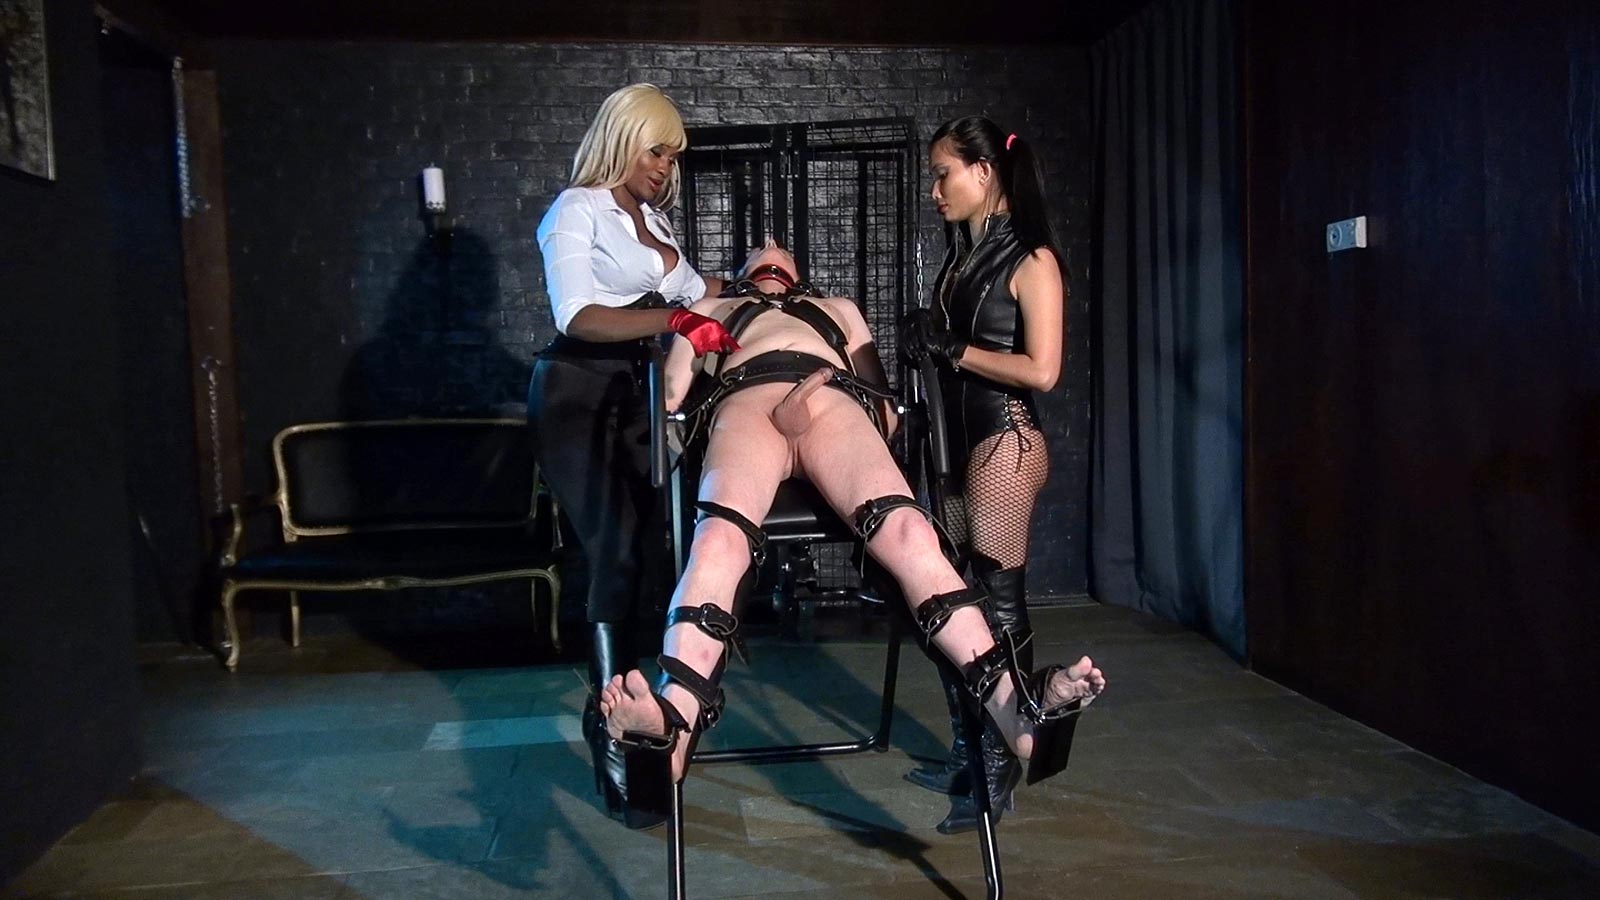 castration cbt public domination   interracial dommes are having nude